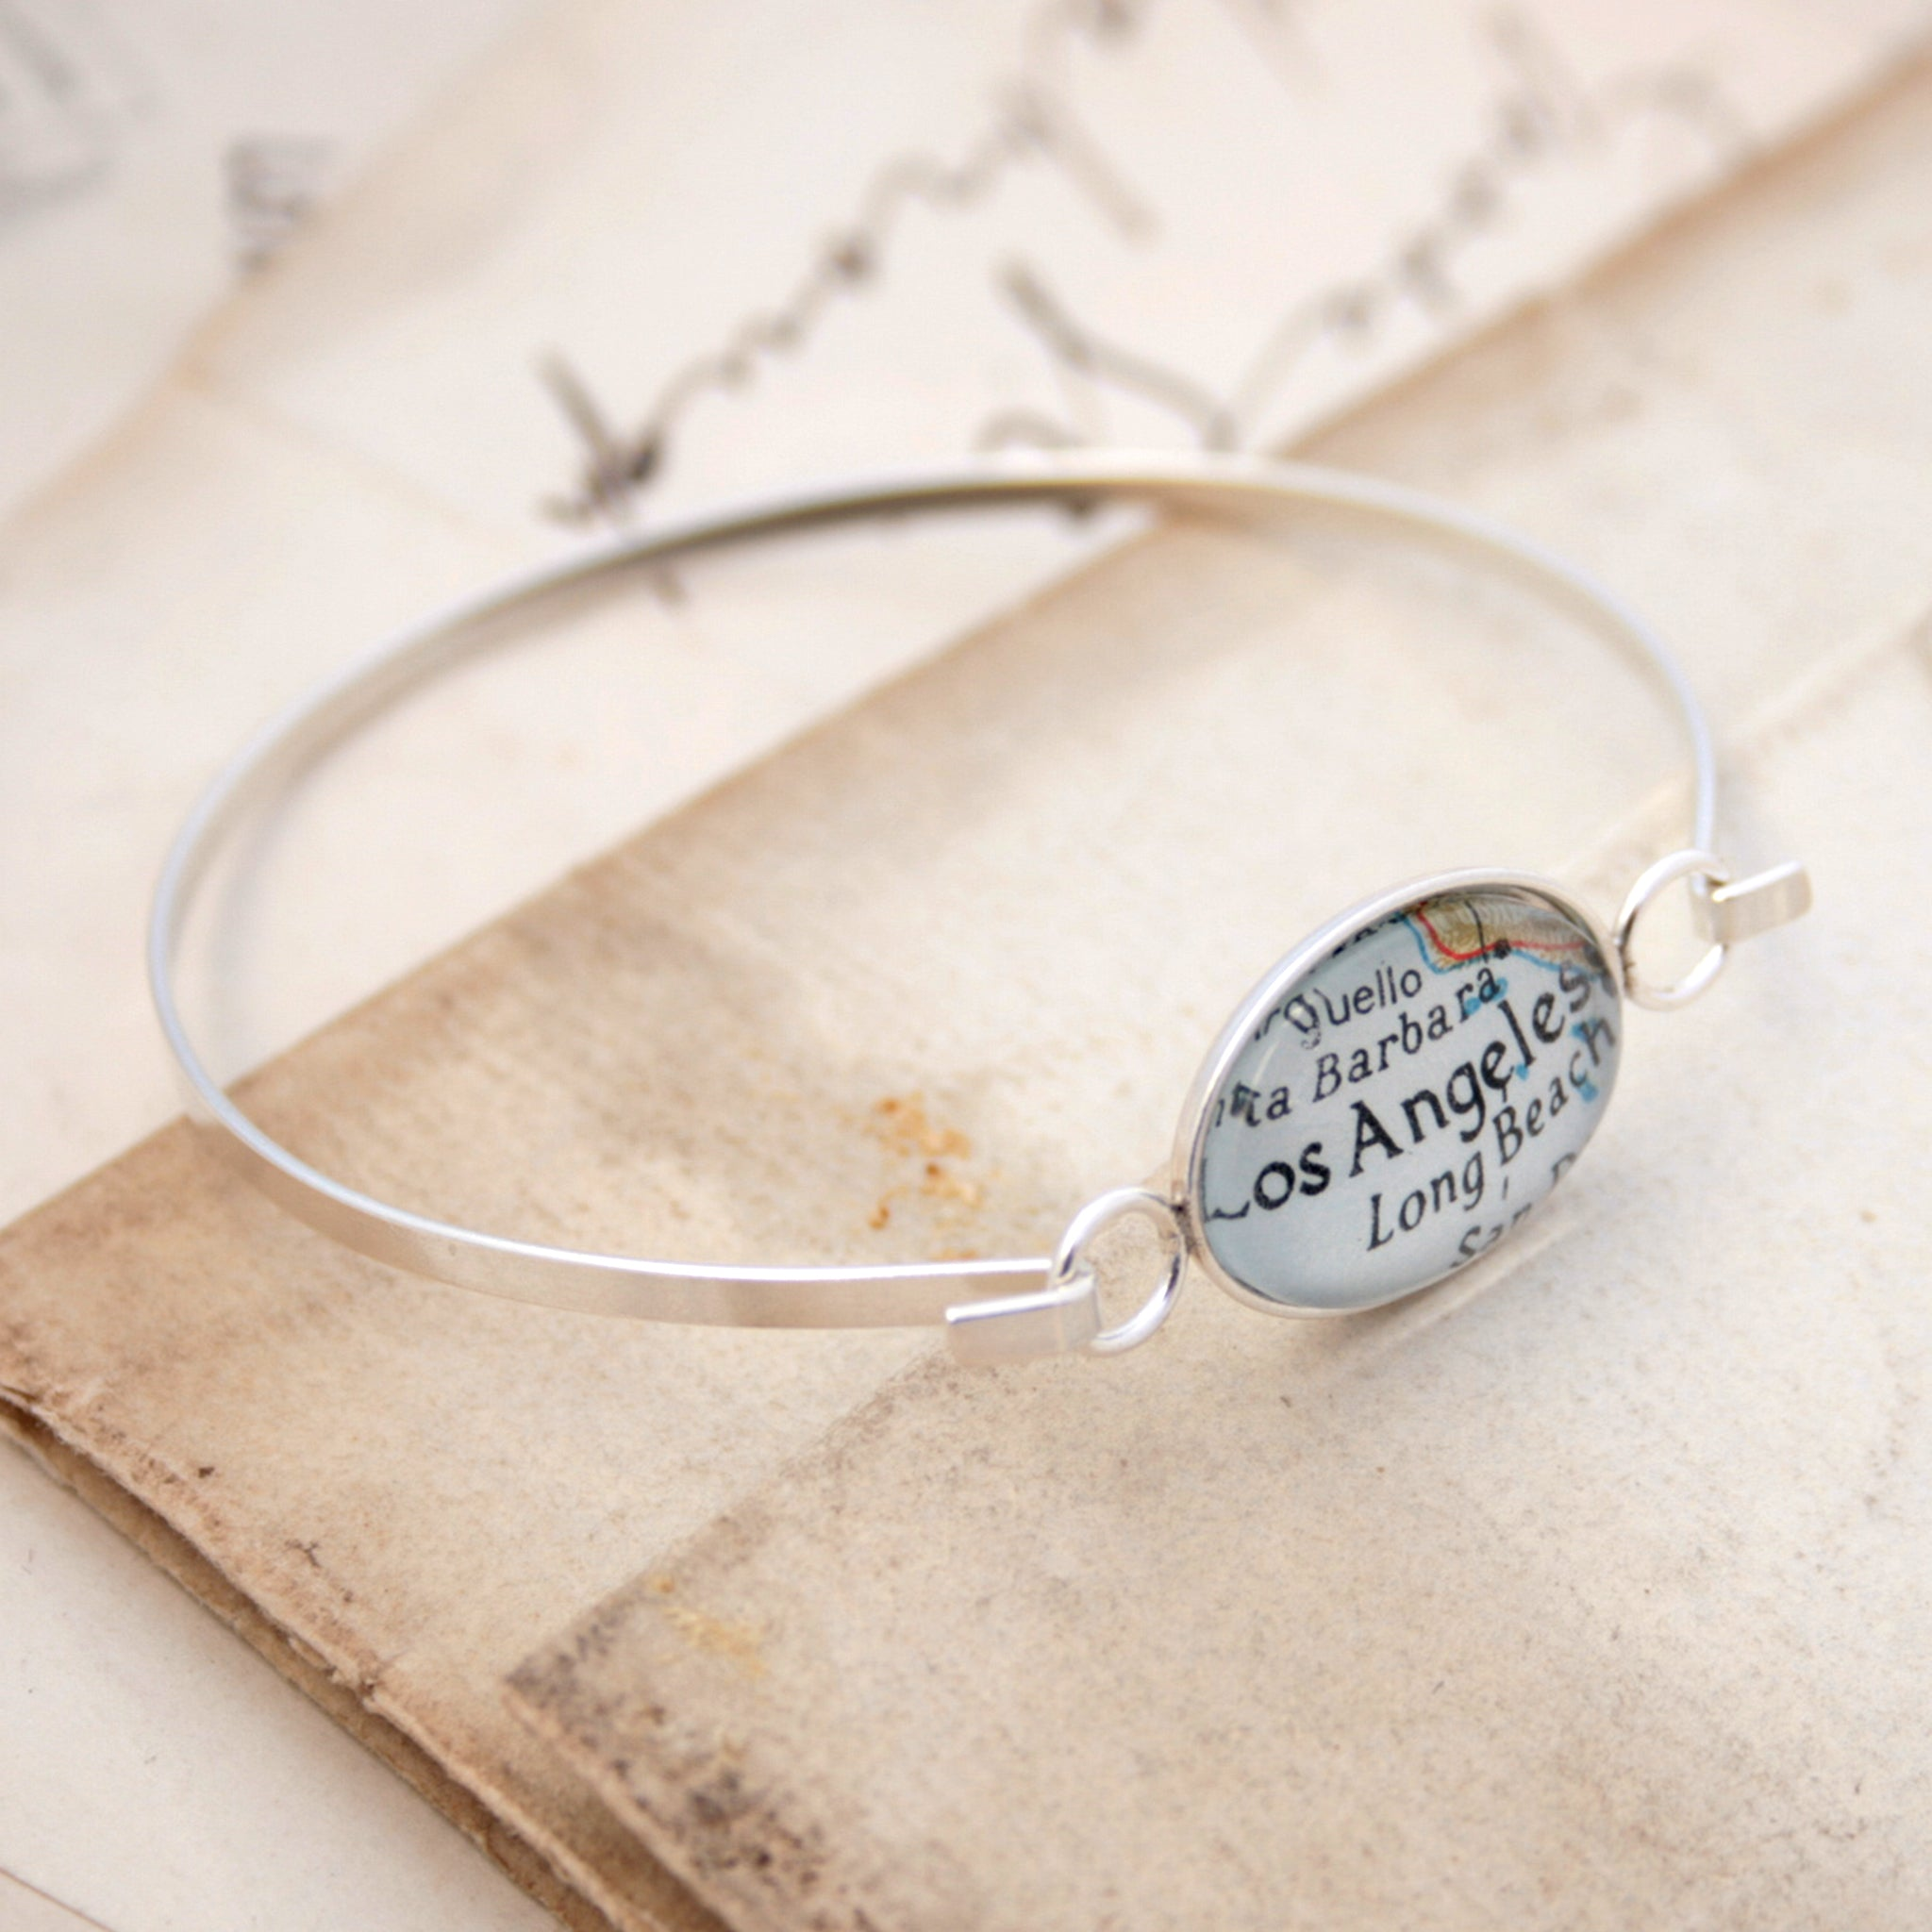 Sterling silver bangle bracelet featuring map of Los Angeles